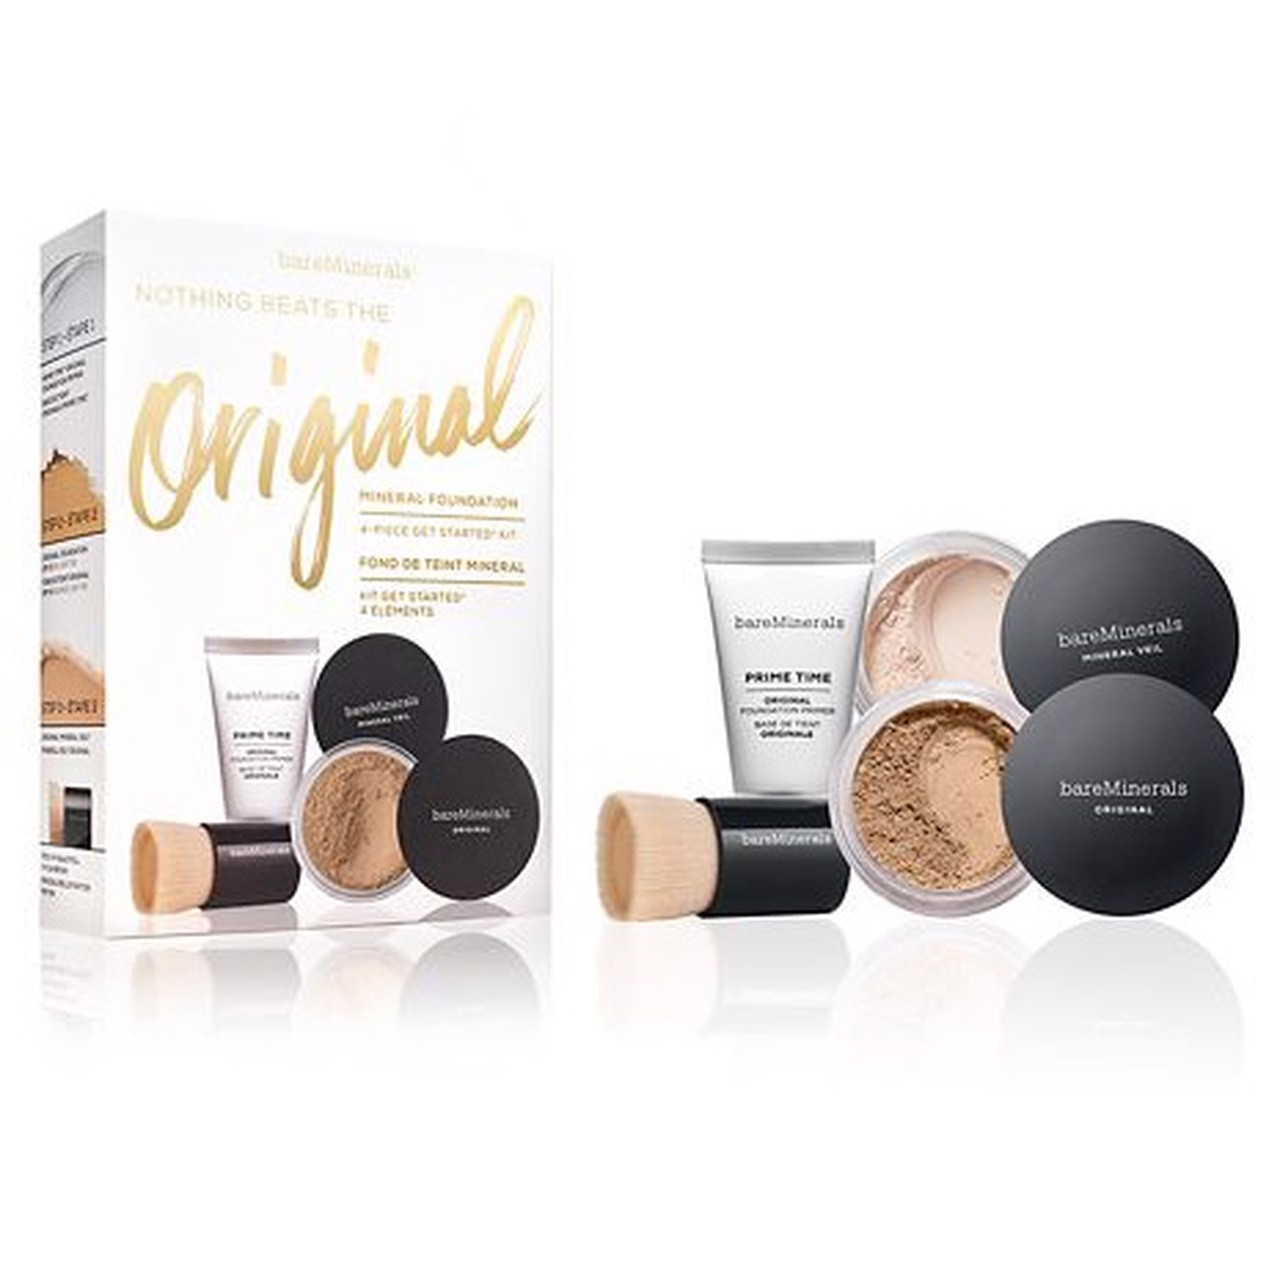 Bộ trang điểm BAREMINERALS GET STARTED MINERAL FOUNDATION KIT